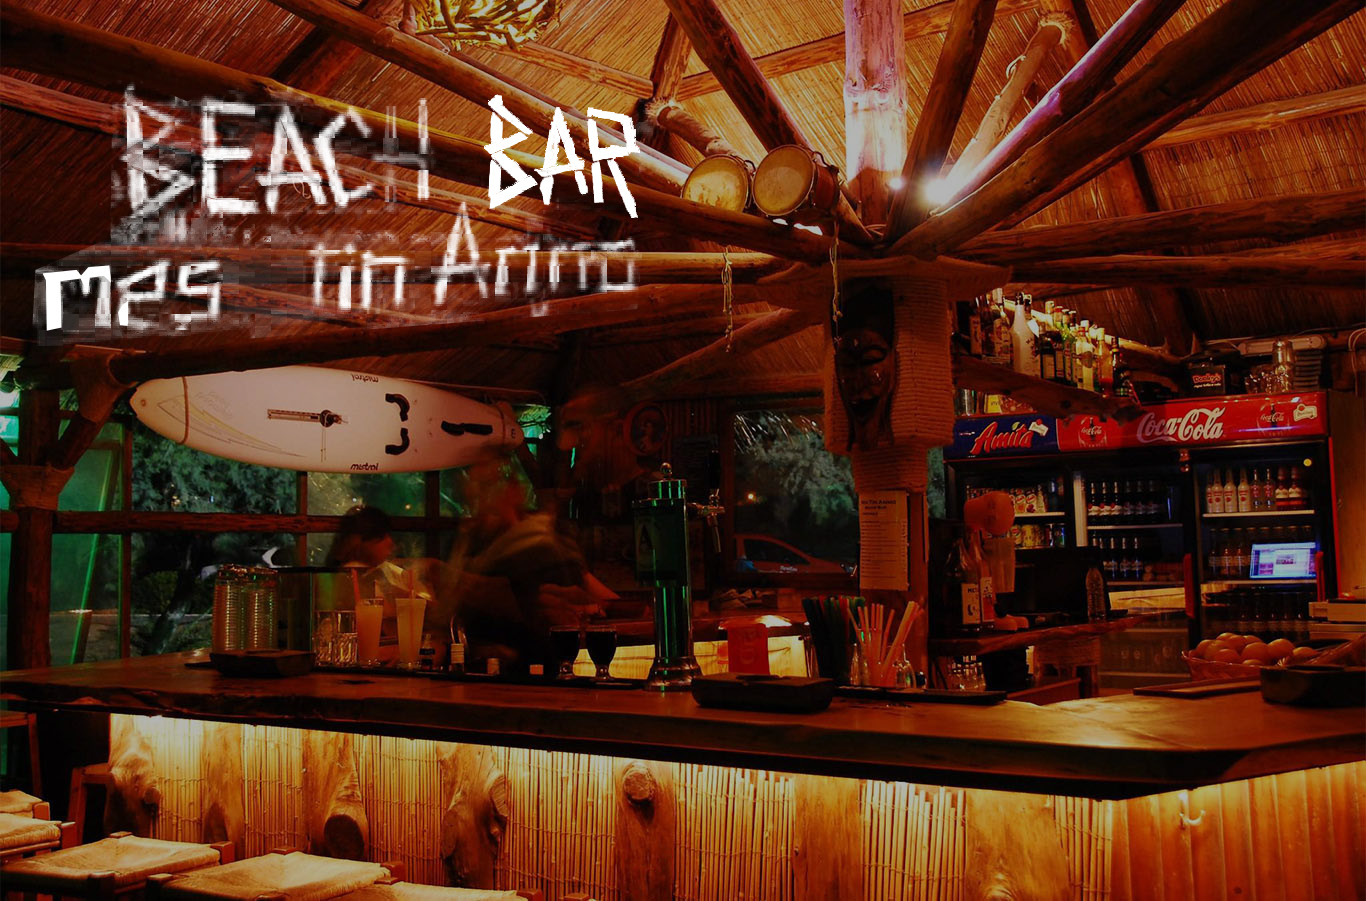 beach bar -  Mes tin Ammo